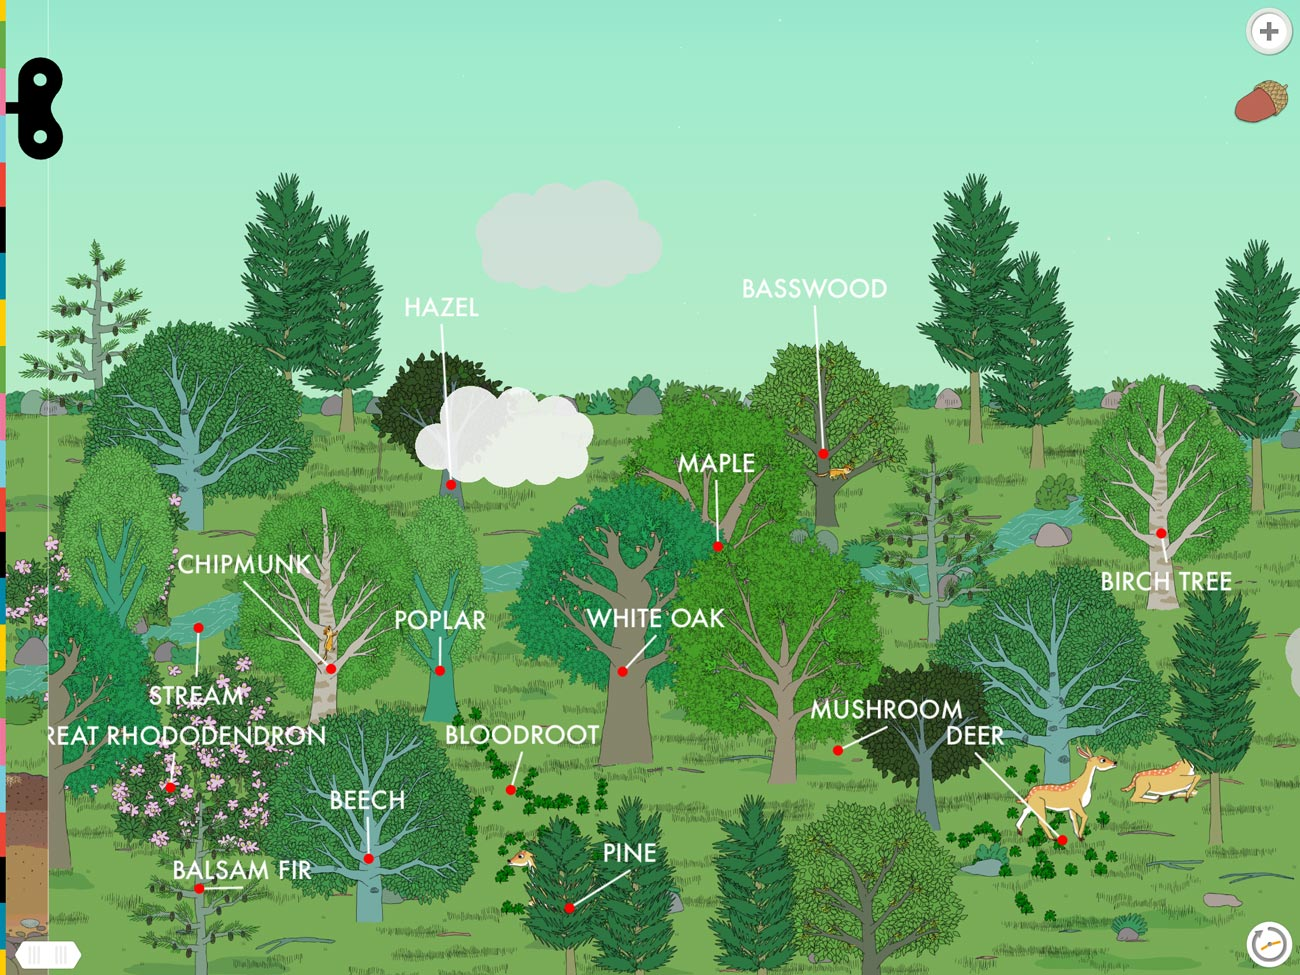 Nature S Child Apps And Sites To Help Kids Explore The